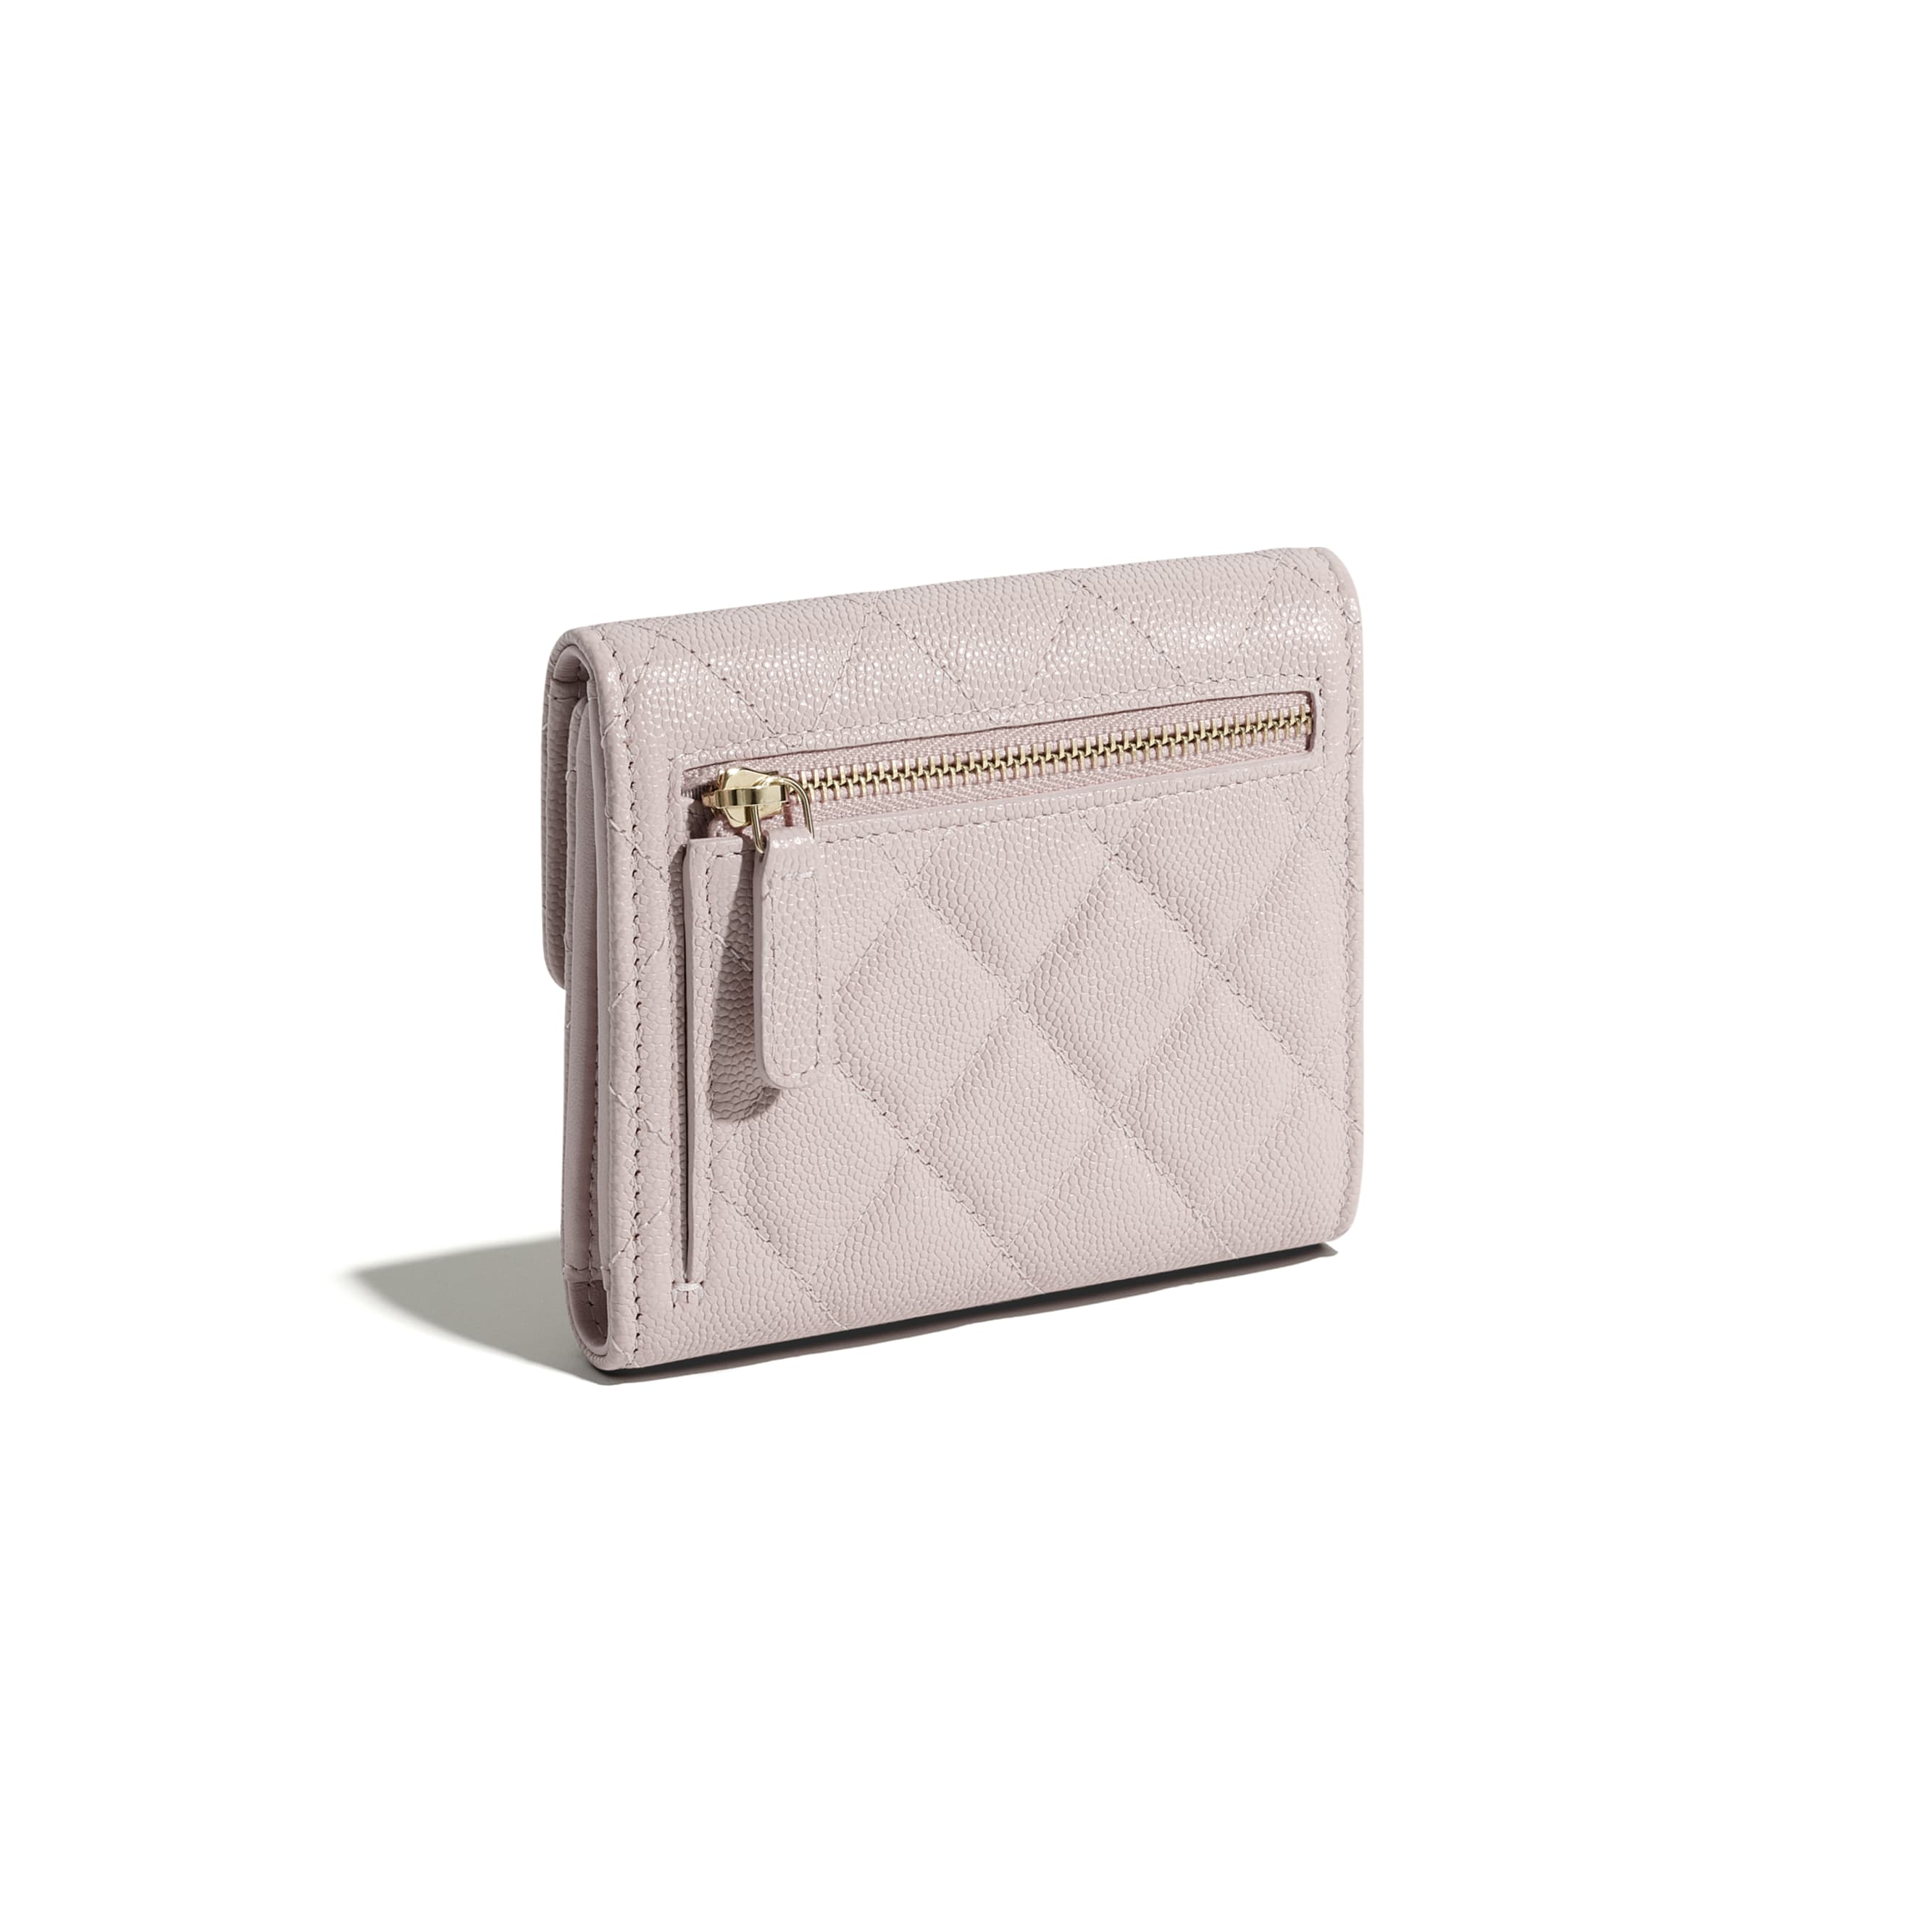 Classic Small Flap Wallet - Light Pink - Grained Calfskin & Gold-Tone Metal - CHANEL - Extra view - see standard sized version